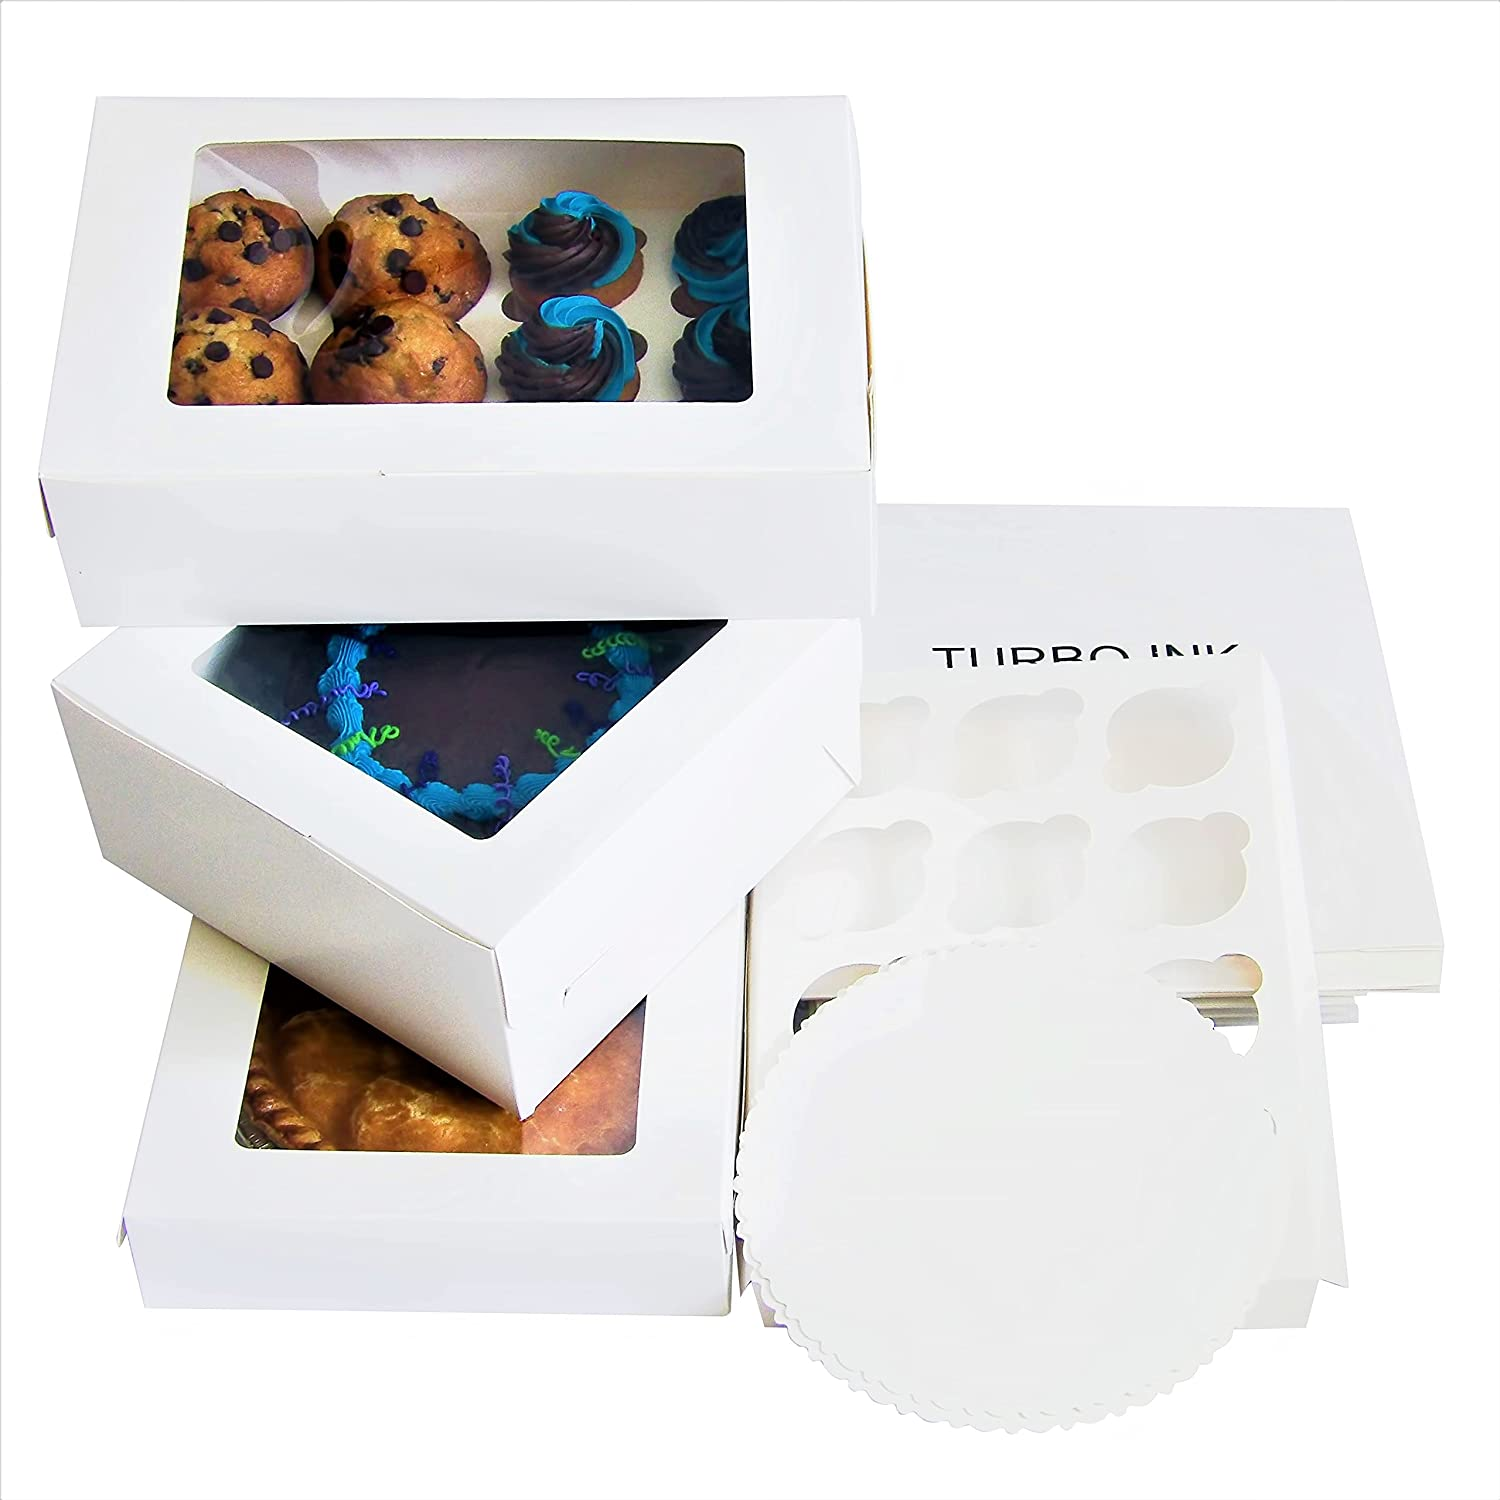 White Bakery Take out containers Clear Window Extra Thick Food Grade Material Disposable Recyclable , Assorted sizes Pack of 15 pieces { 12 cavity Cupcake Boxes 13x10x4, Cake Boxes10x10x5, Pie Boxes 10x10x2.5, round cake board and cupcake inserts } Mess Free Packaging Transporting Cupcakes, Cakes, Pies, Cookies, Muffins, Brownies, Desserts, Treats ,Gifts